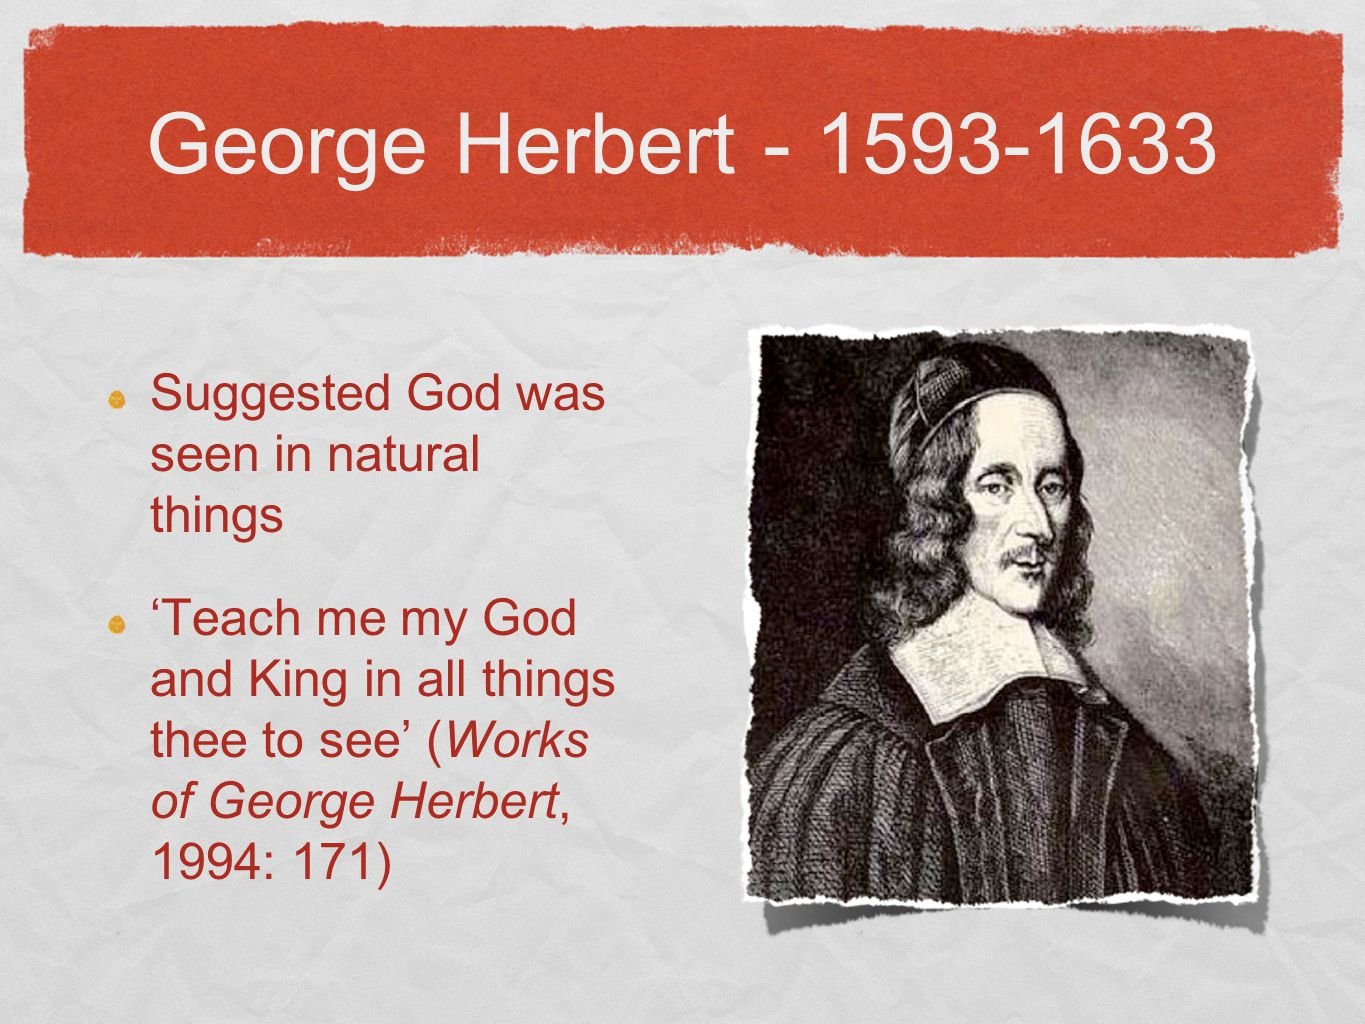 George Herbert - 1593-1633 Suggested God was seen in natural things 'Teach me my God and King in all things thee to see' (Works of George Herbert, 1994: 171)